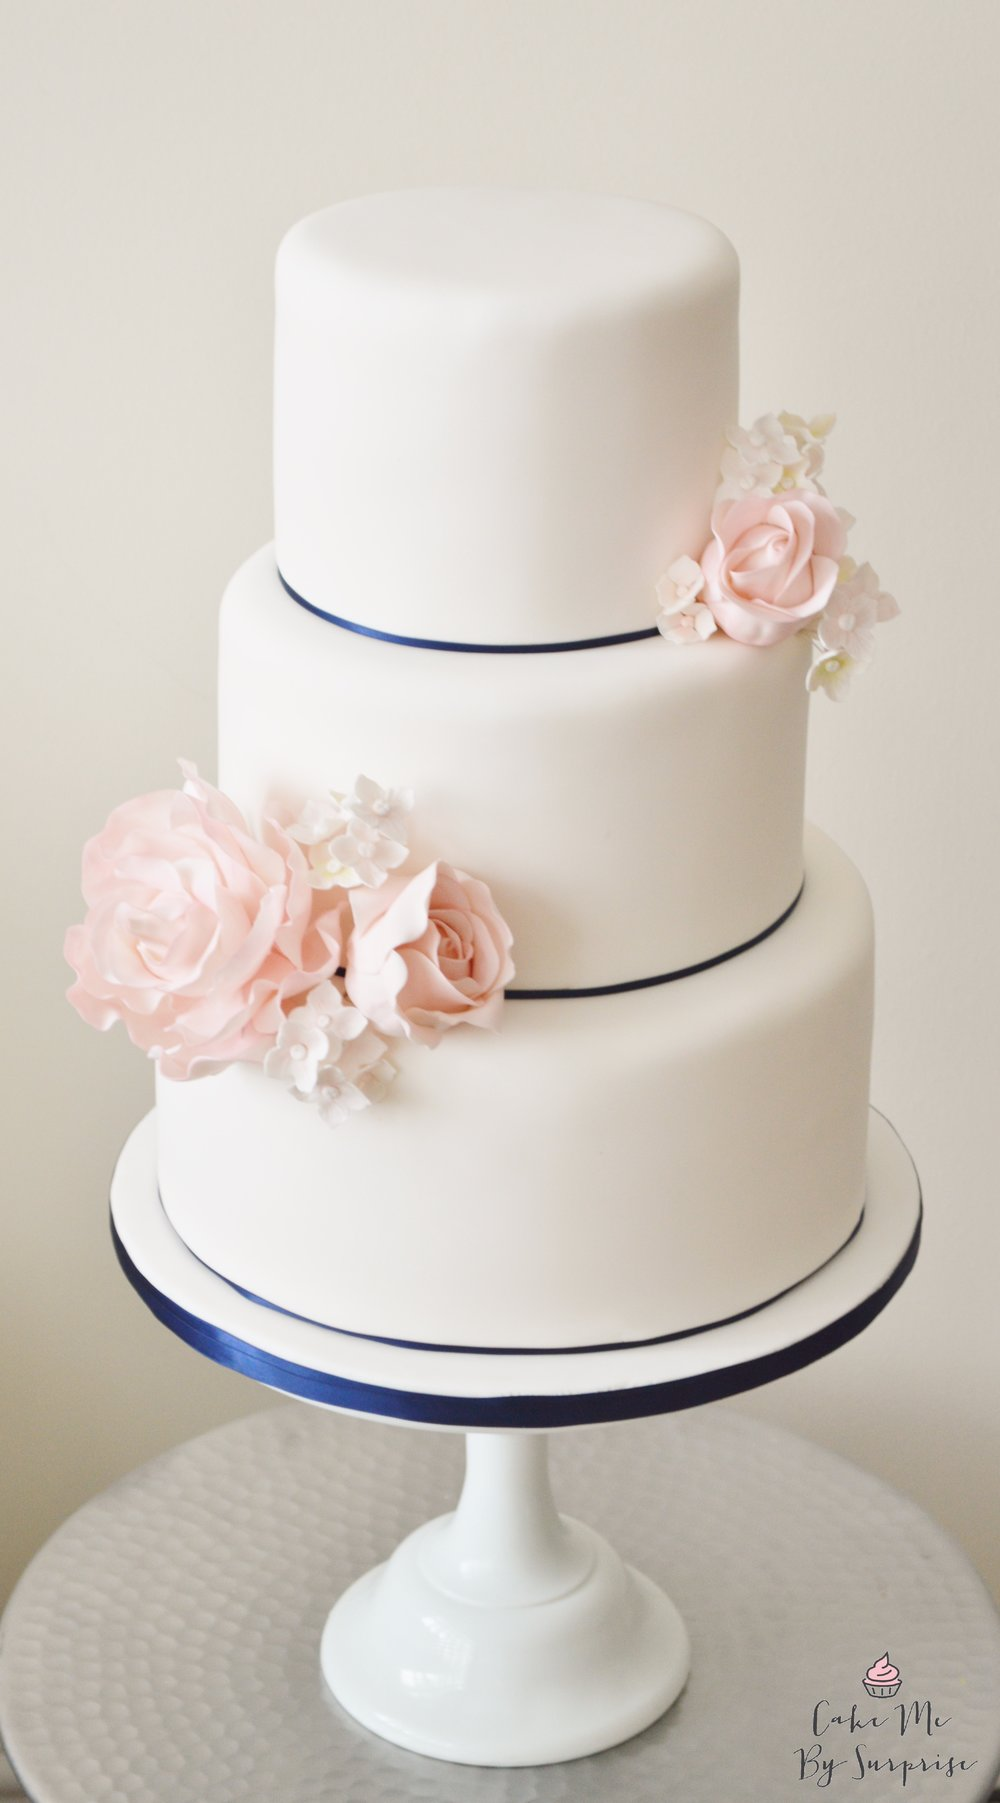 Three tier white and pink flowers wedding cake with navy trim